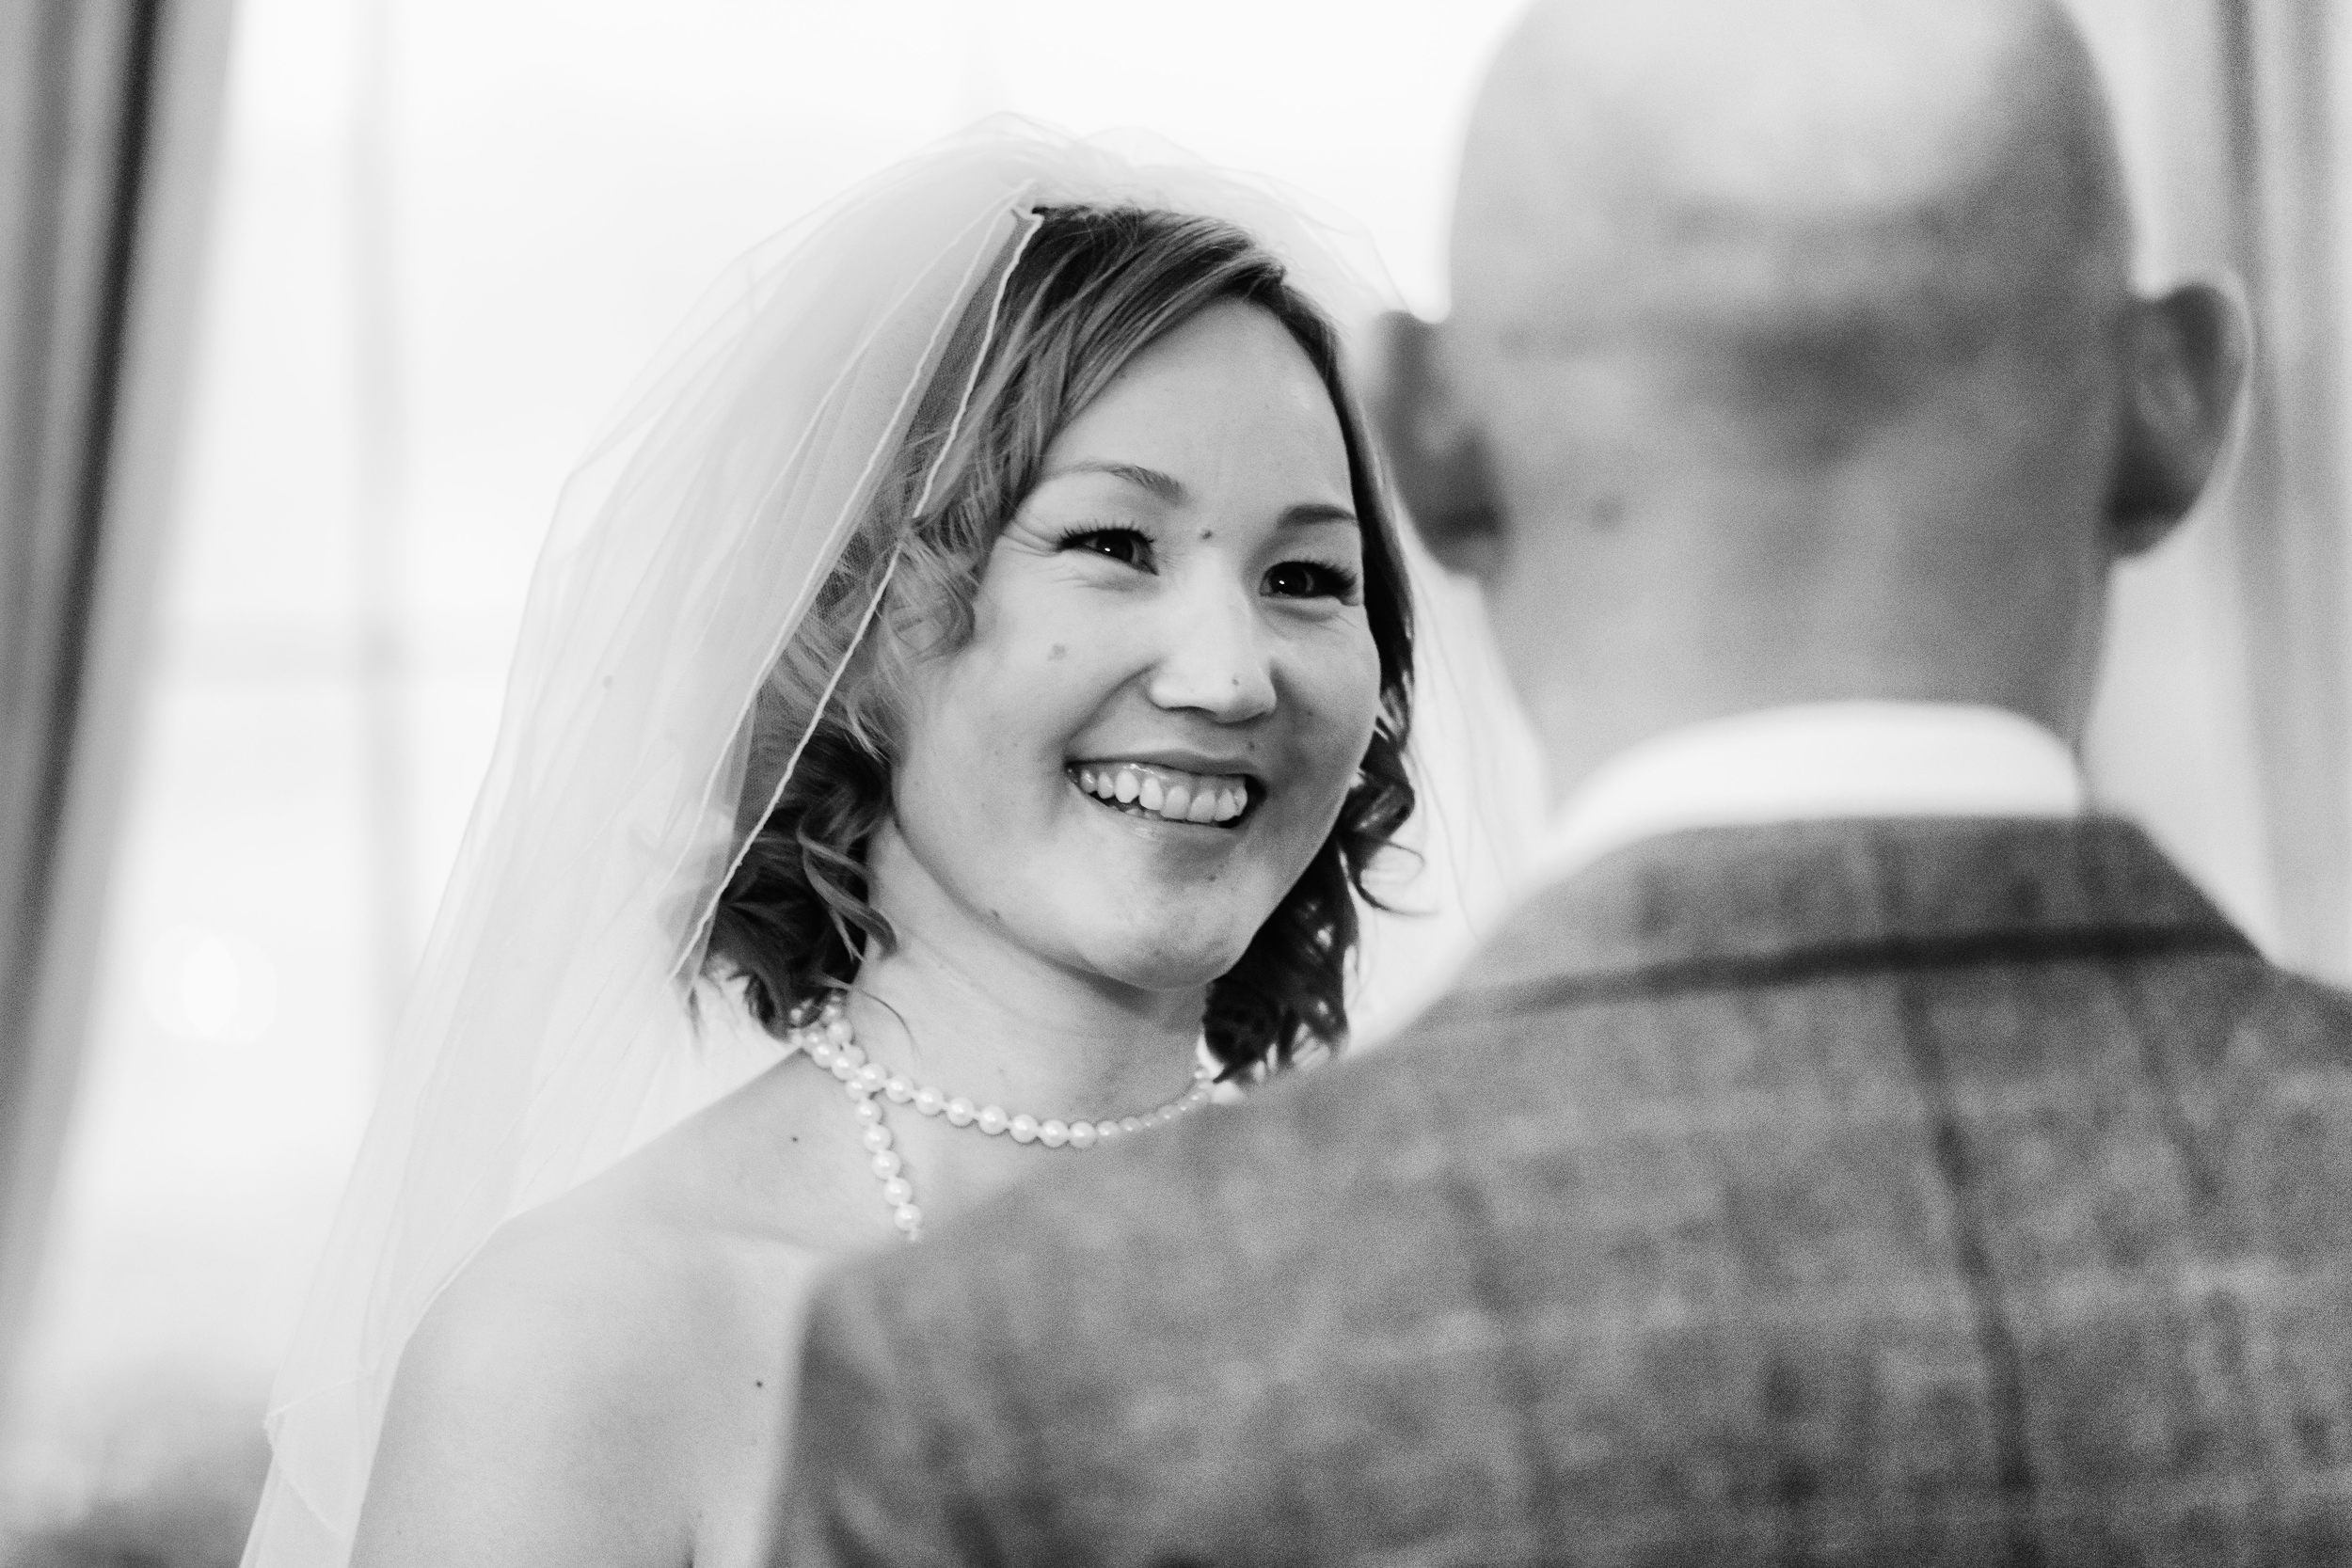 The bride smiles lovingly at the groom during their wedding ceremony at Linden Hall, Northumberland in this black and white photo